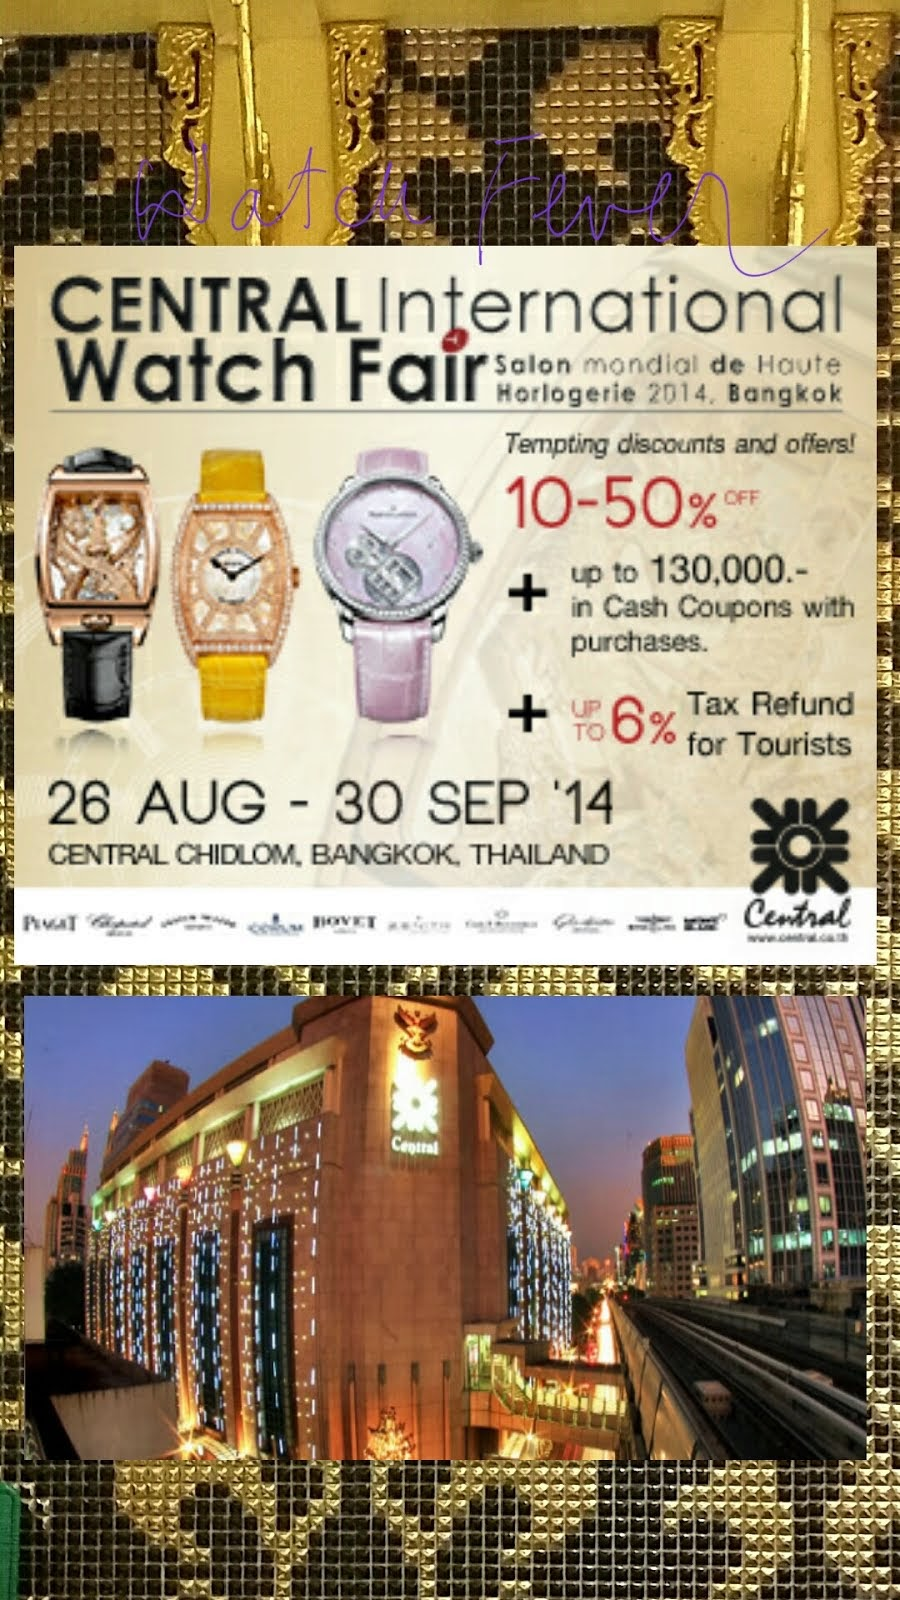 Central International Watch fair Chidlom, Bangkok